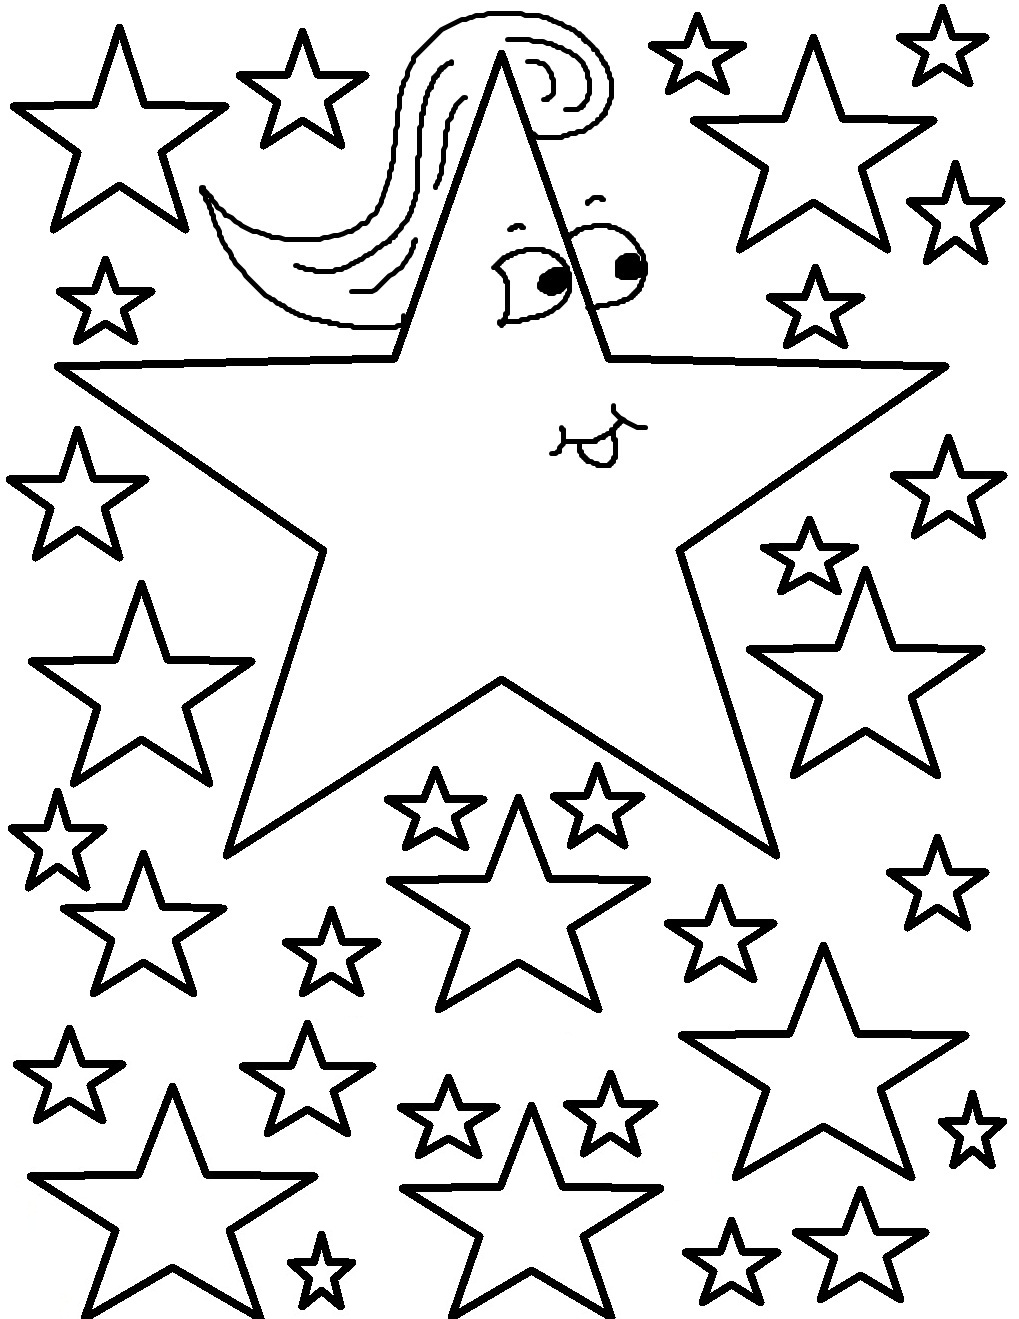 printable pictures of stars free printable star coloring pages for kids of pictures stars printable